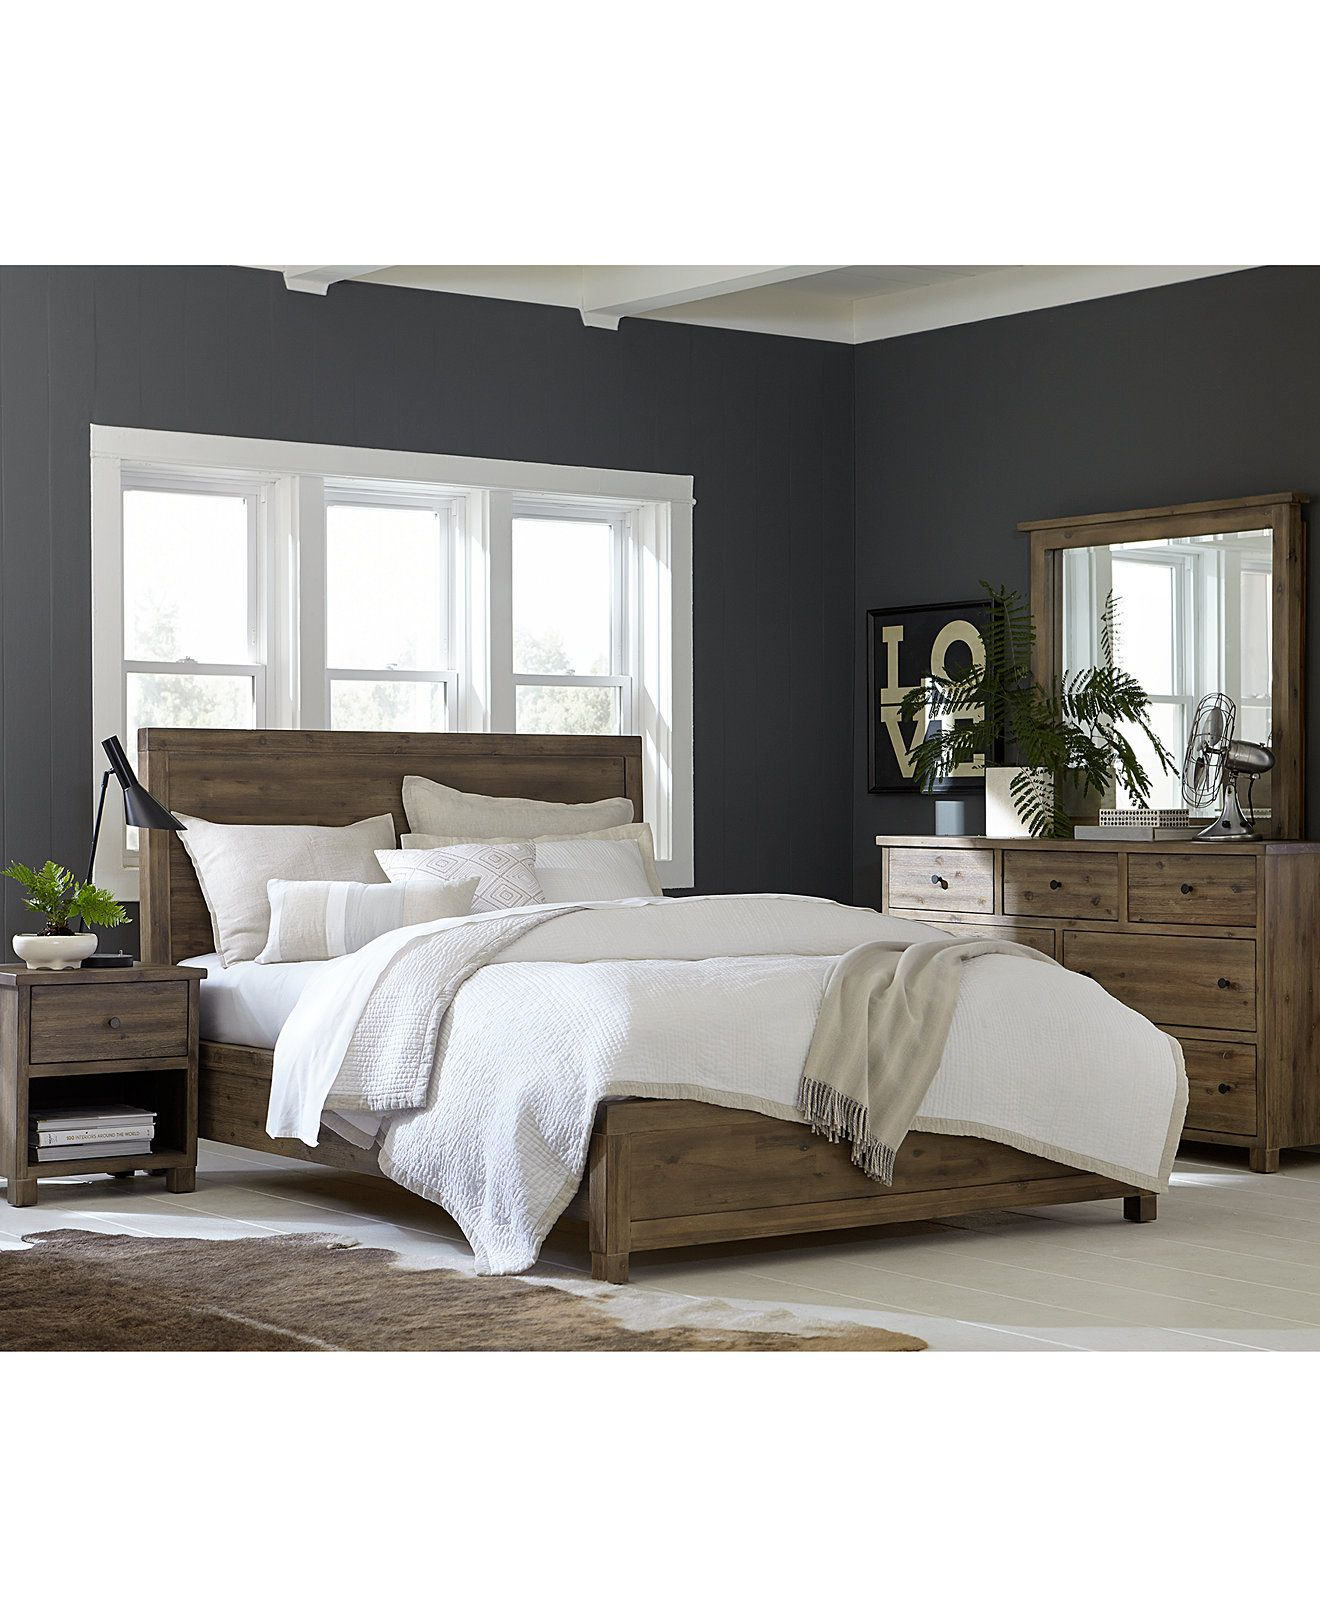 and macy bed best mattress of elegant cover pic ideas new macys sale lovely home bugs pictures sets